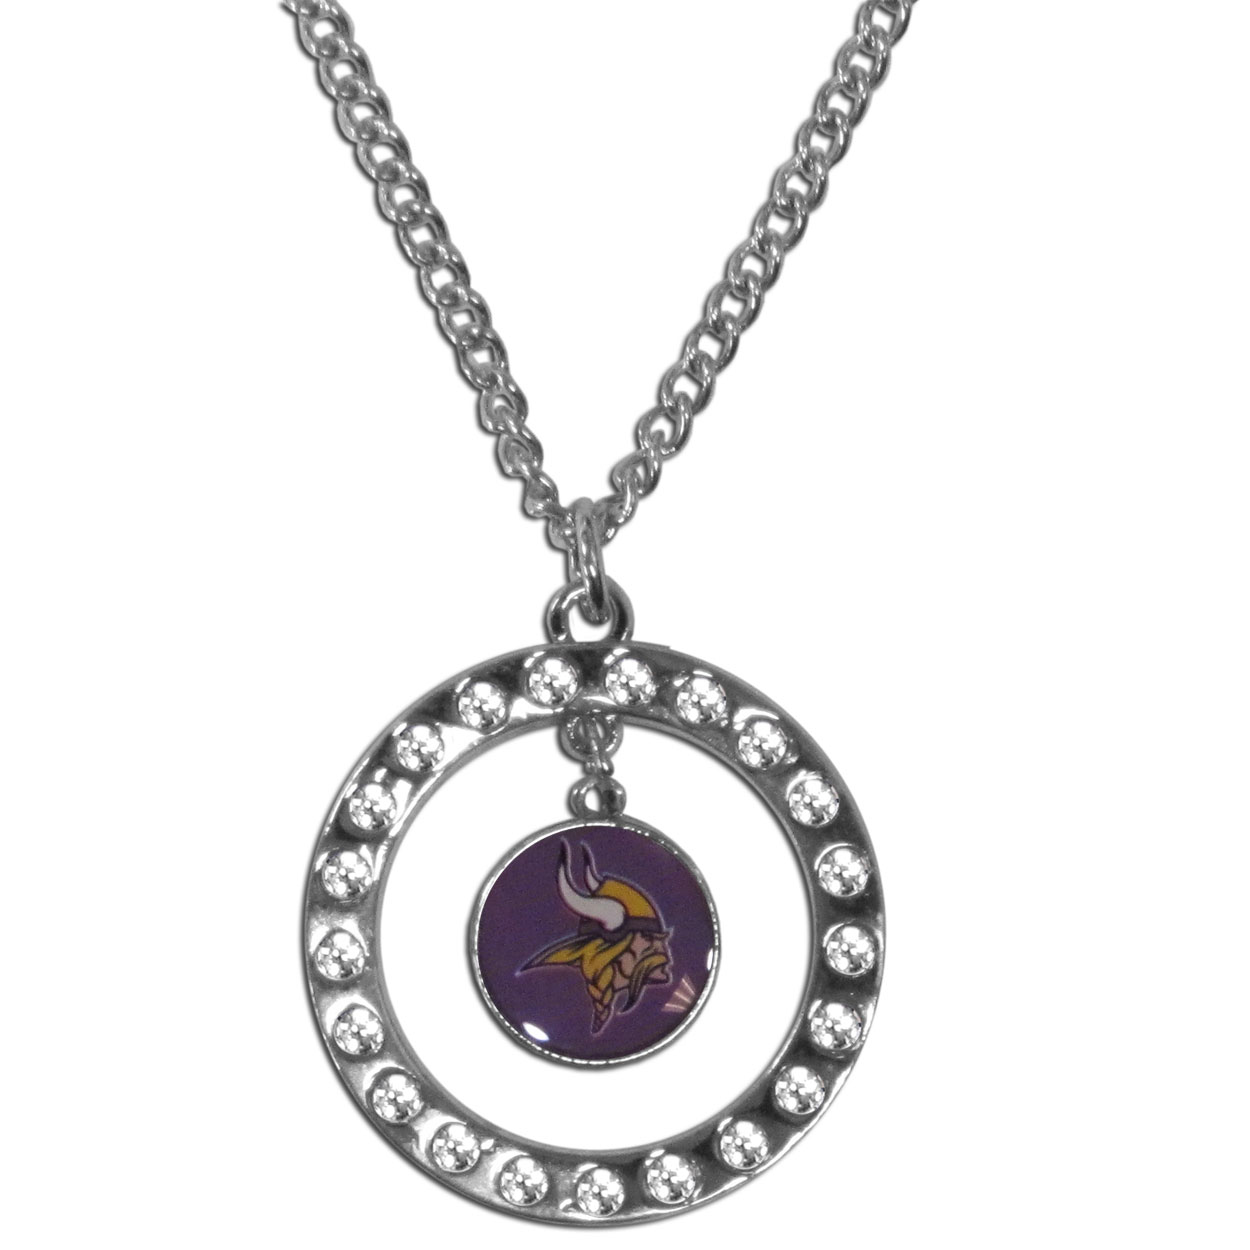 Minnesota Vikings Rhinestone Hoop Necklace - Our Minnesota Vikings rhinestone hoop necklace comes on an 18 inch chain and features a hoop covered in rhinestones with a high polish chrome finish and a team logo dangling in the center.